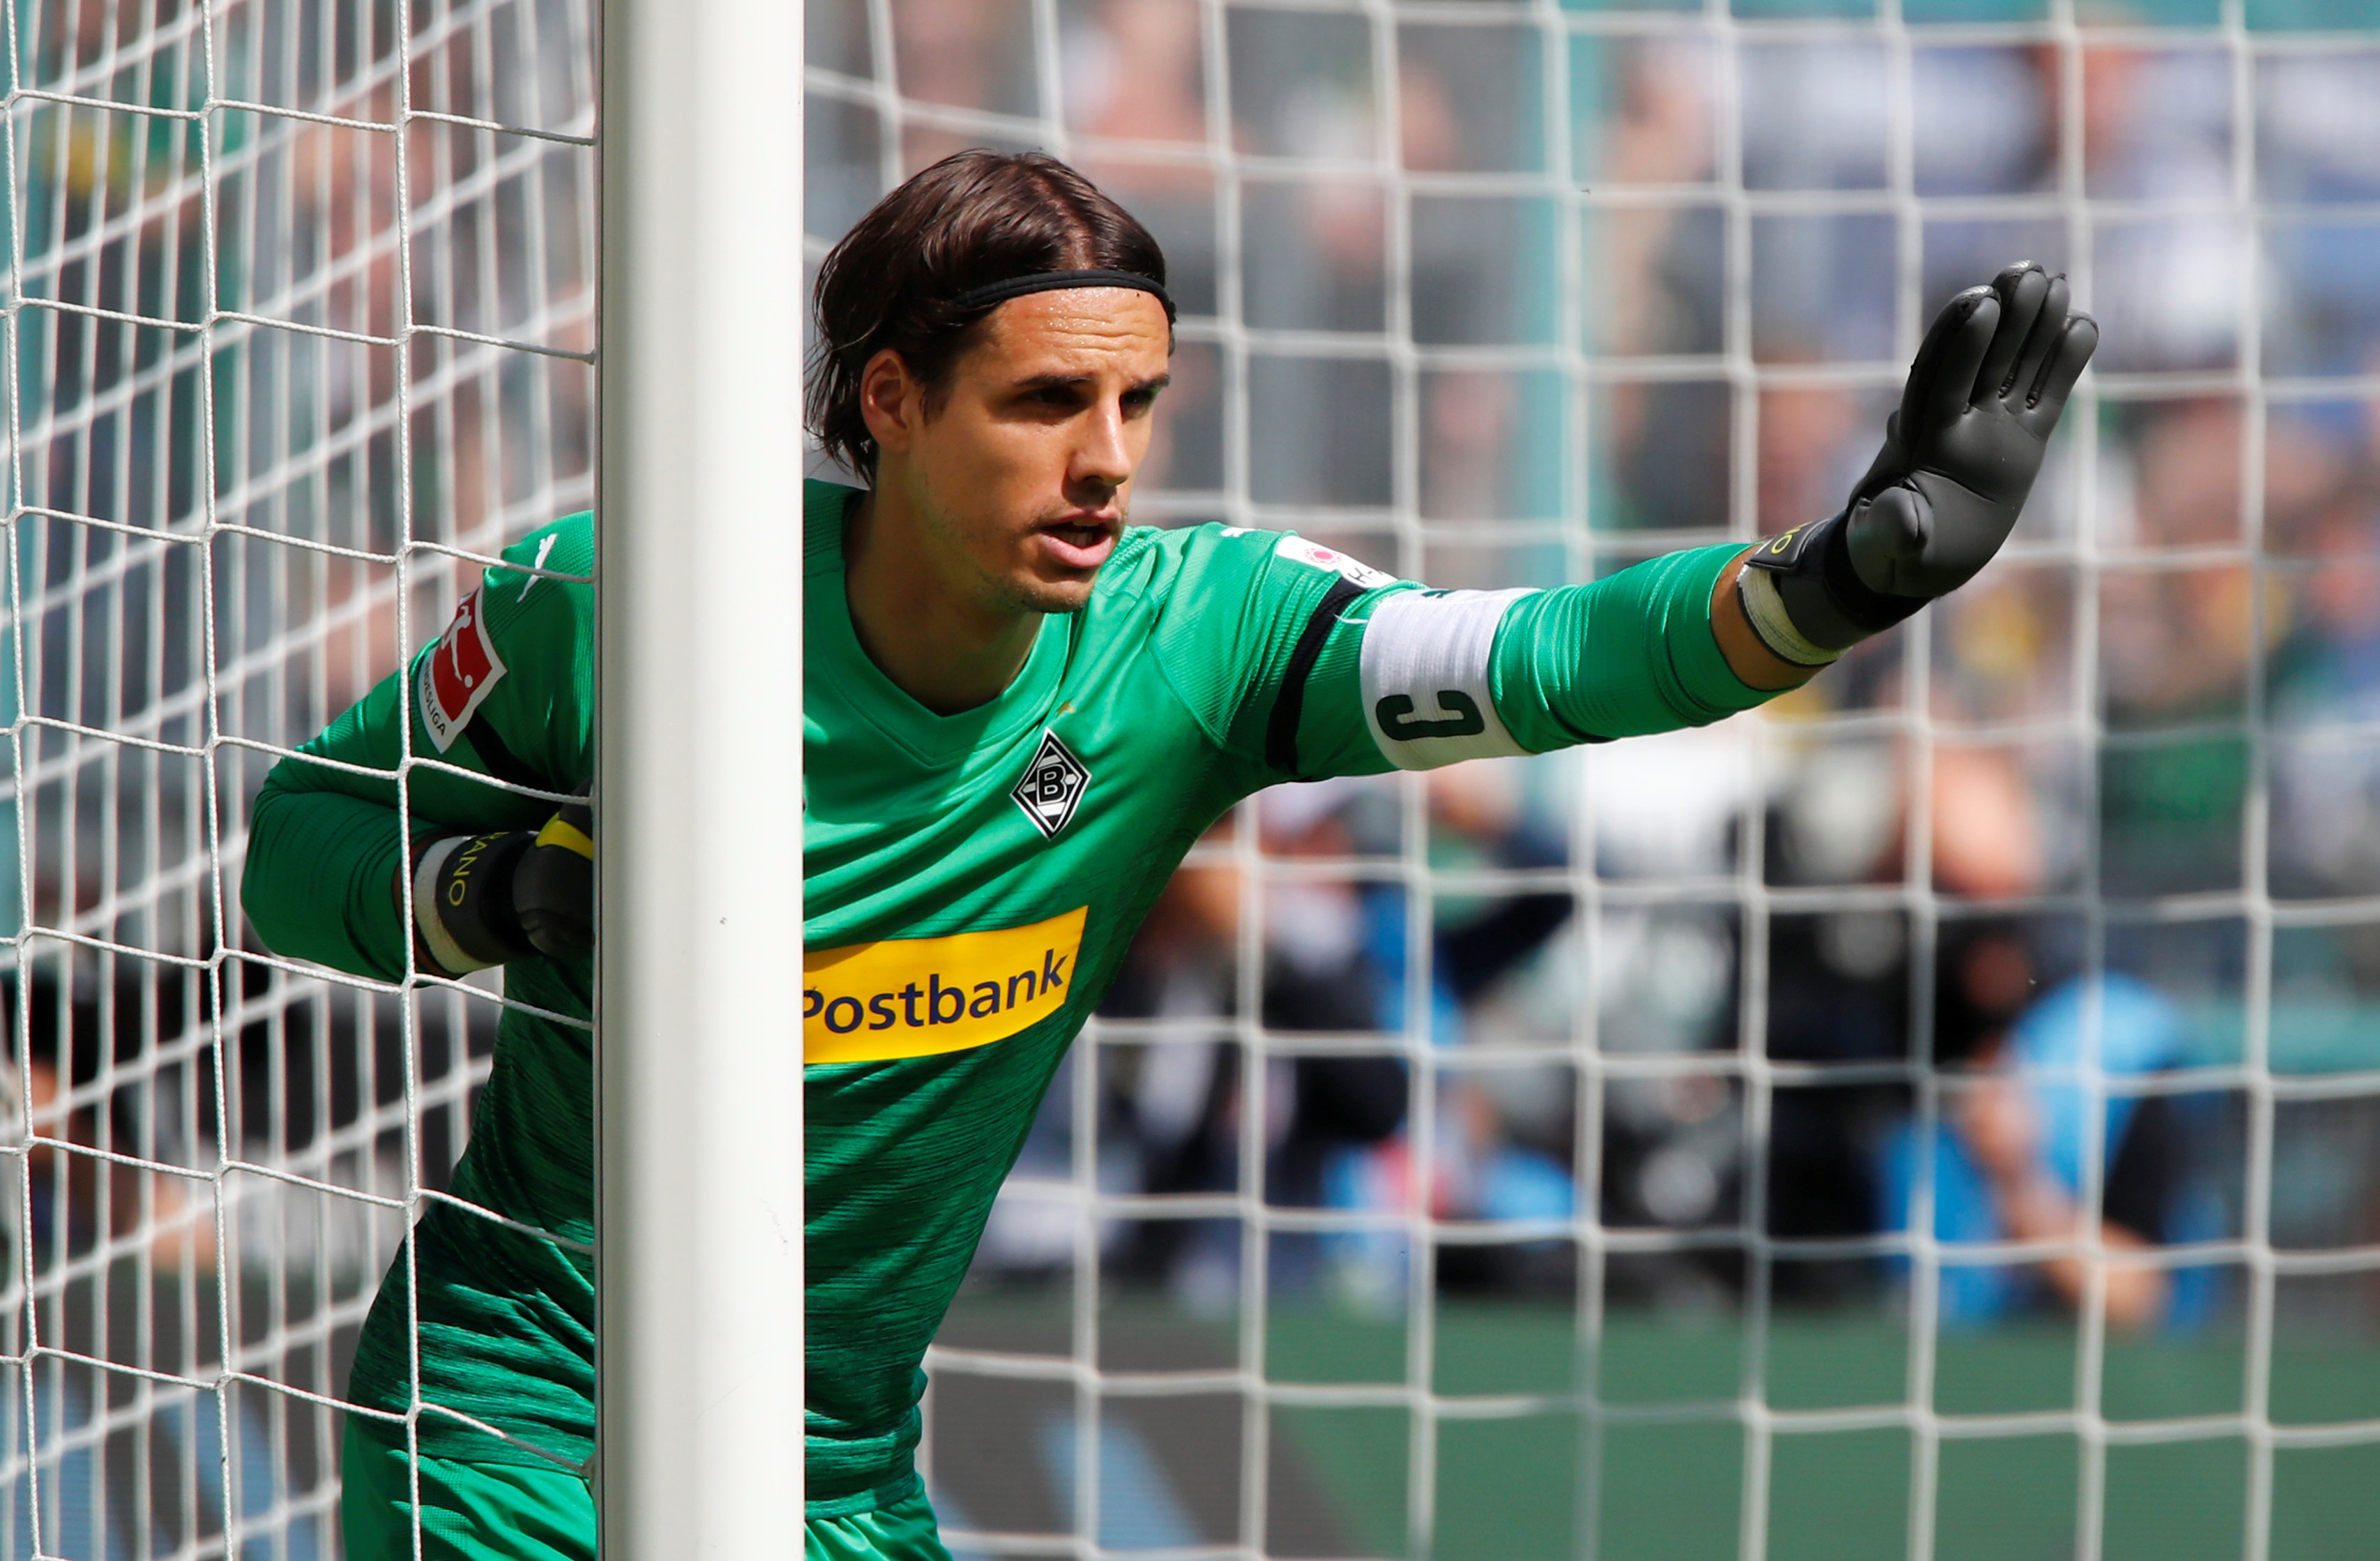 OFFICIAL Yann Sommer signs new Borussia Monchengladbach contract